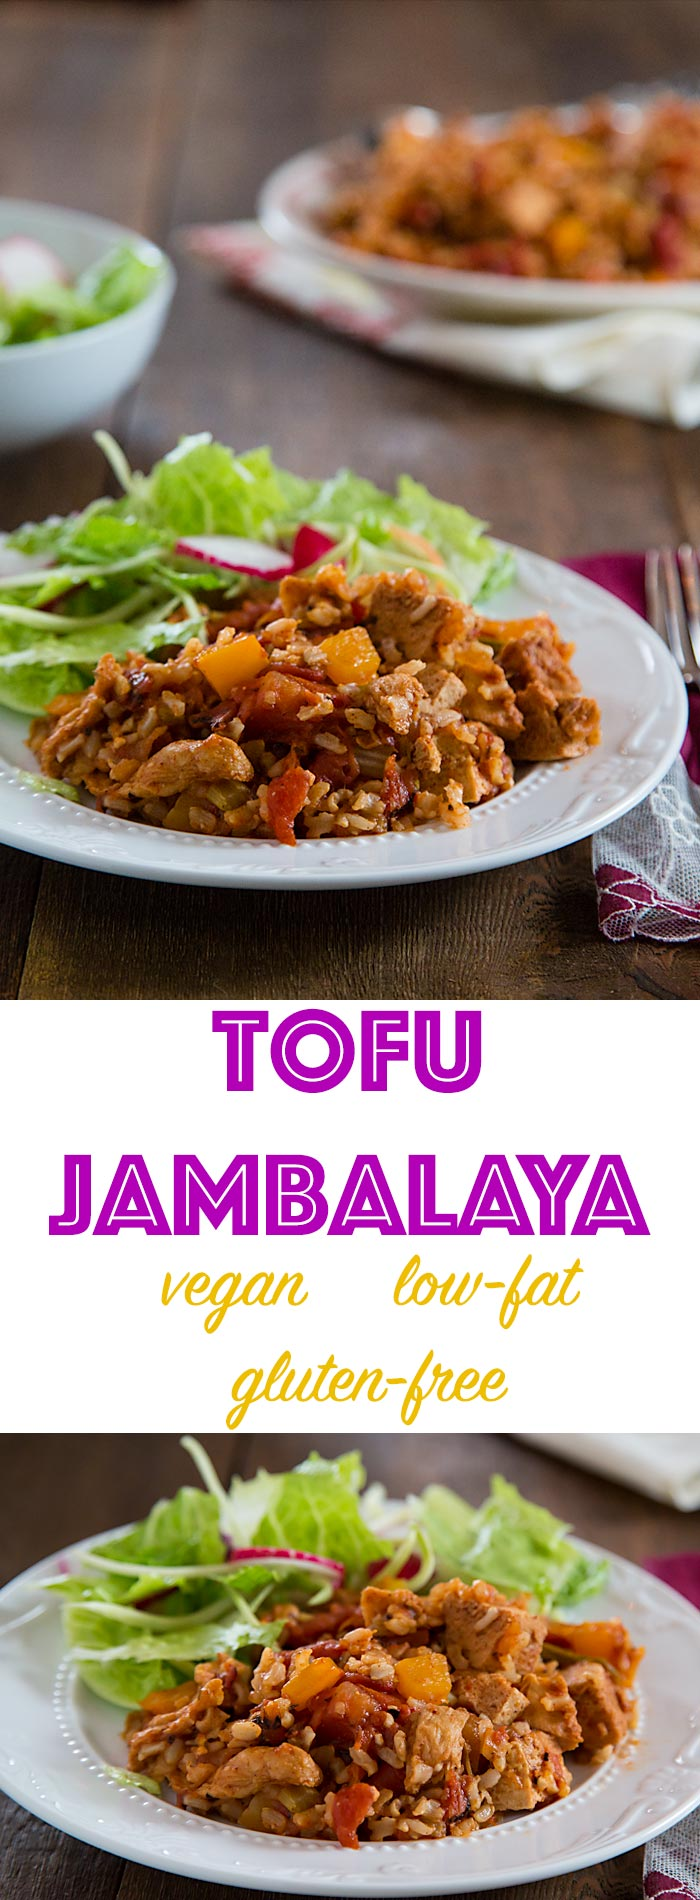 This vegan jambalaya is more like a paella or Spanish rice than a traditional jambalaya. Gluten-free and low-fat!